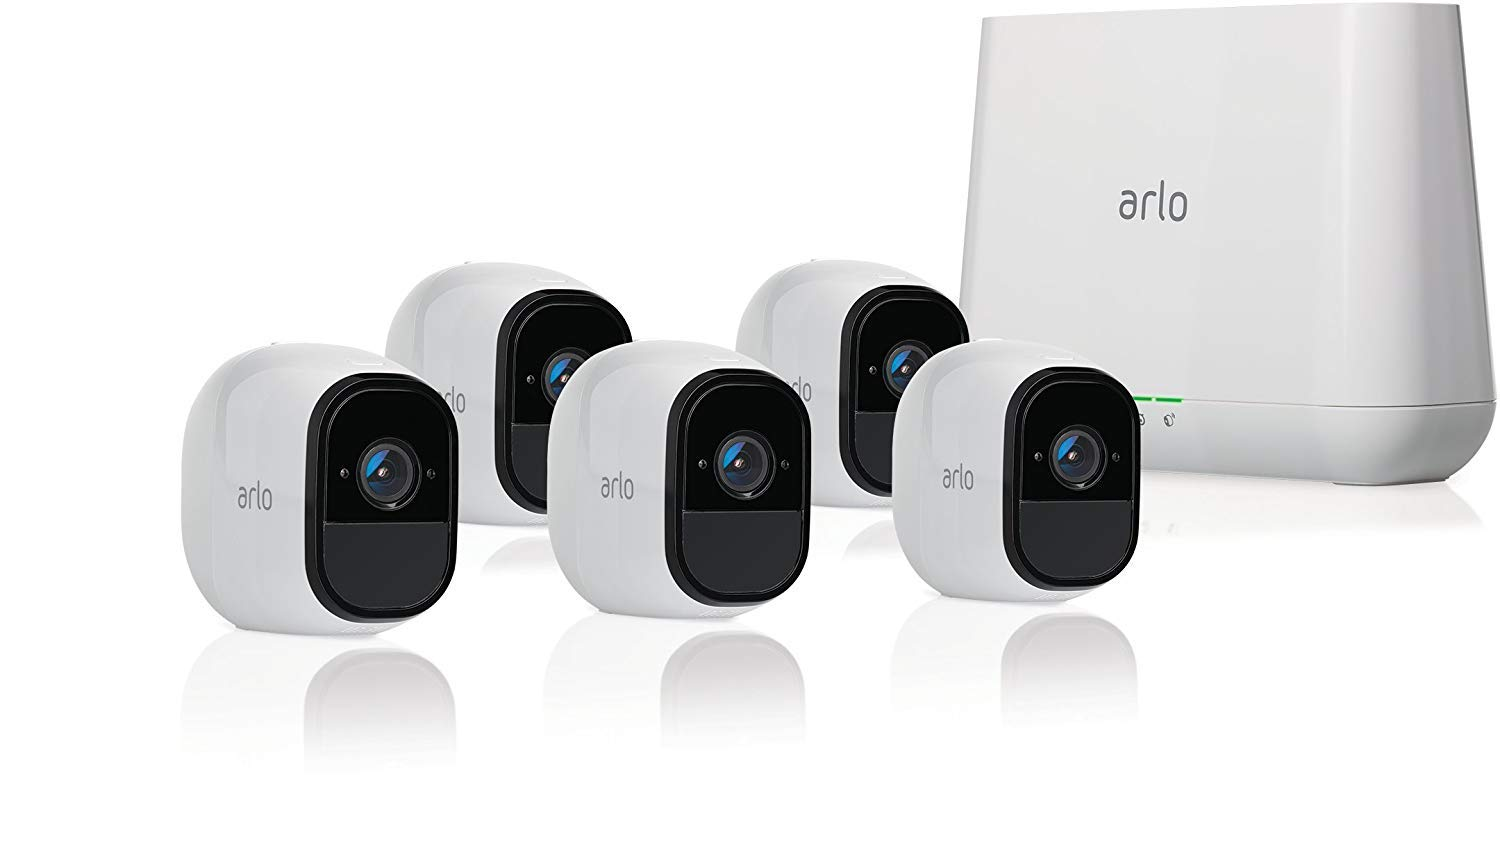 Arlo Pro 2 VMS4530P-100NAR Wireless Home Security Camera System with Siren, Rechargeable, Night Vision, Indoor/Outdoor, 1080p, 2-Way Audio, Wall Mount, 5 Camera Kit, White (Renewed) by Arlo